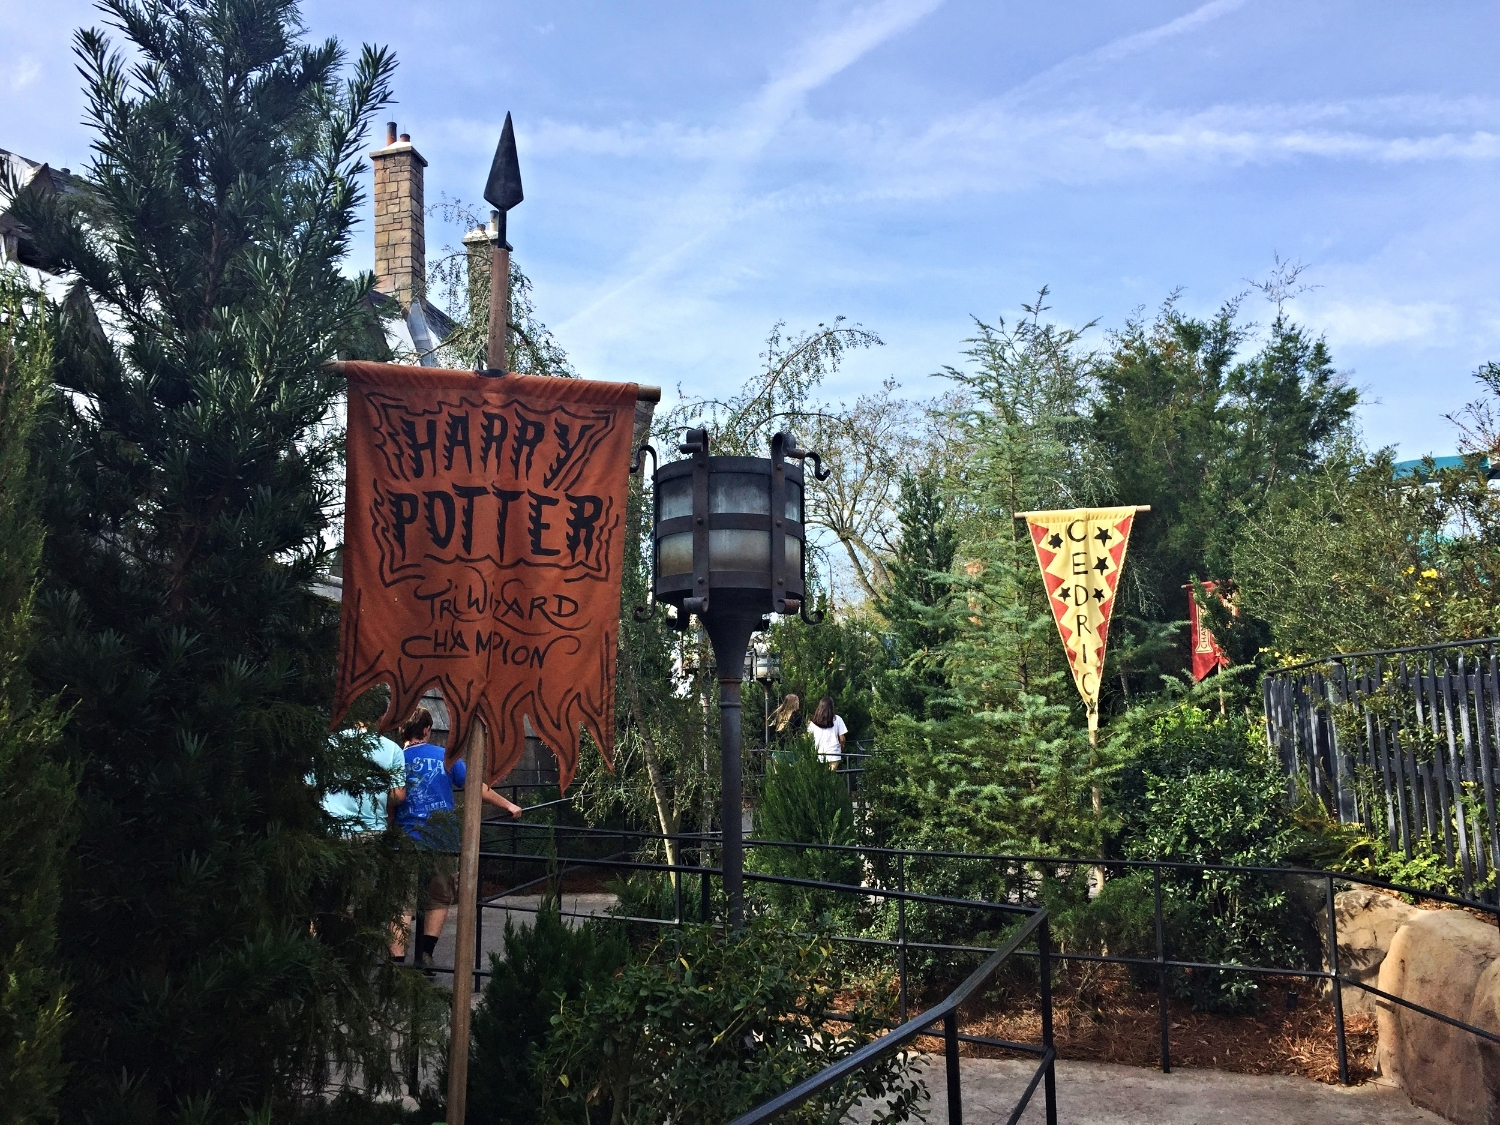 Banners Along the Queue for Dragon Challenge